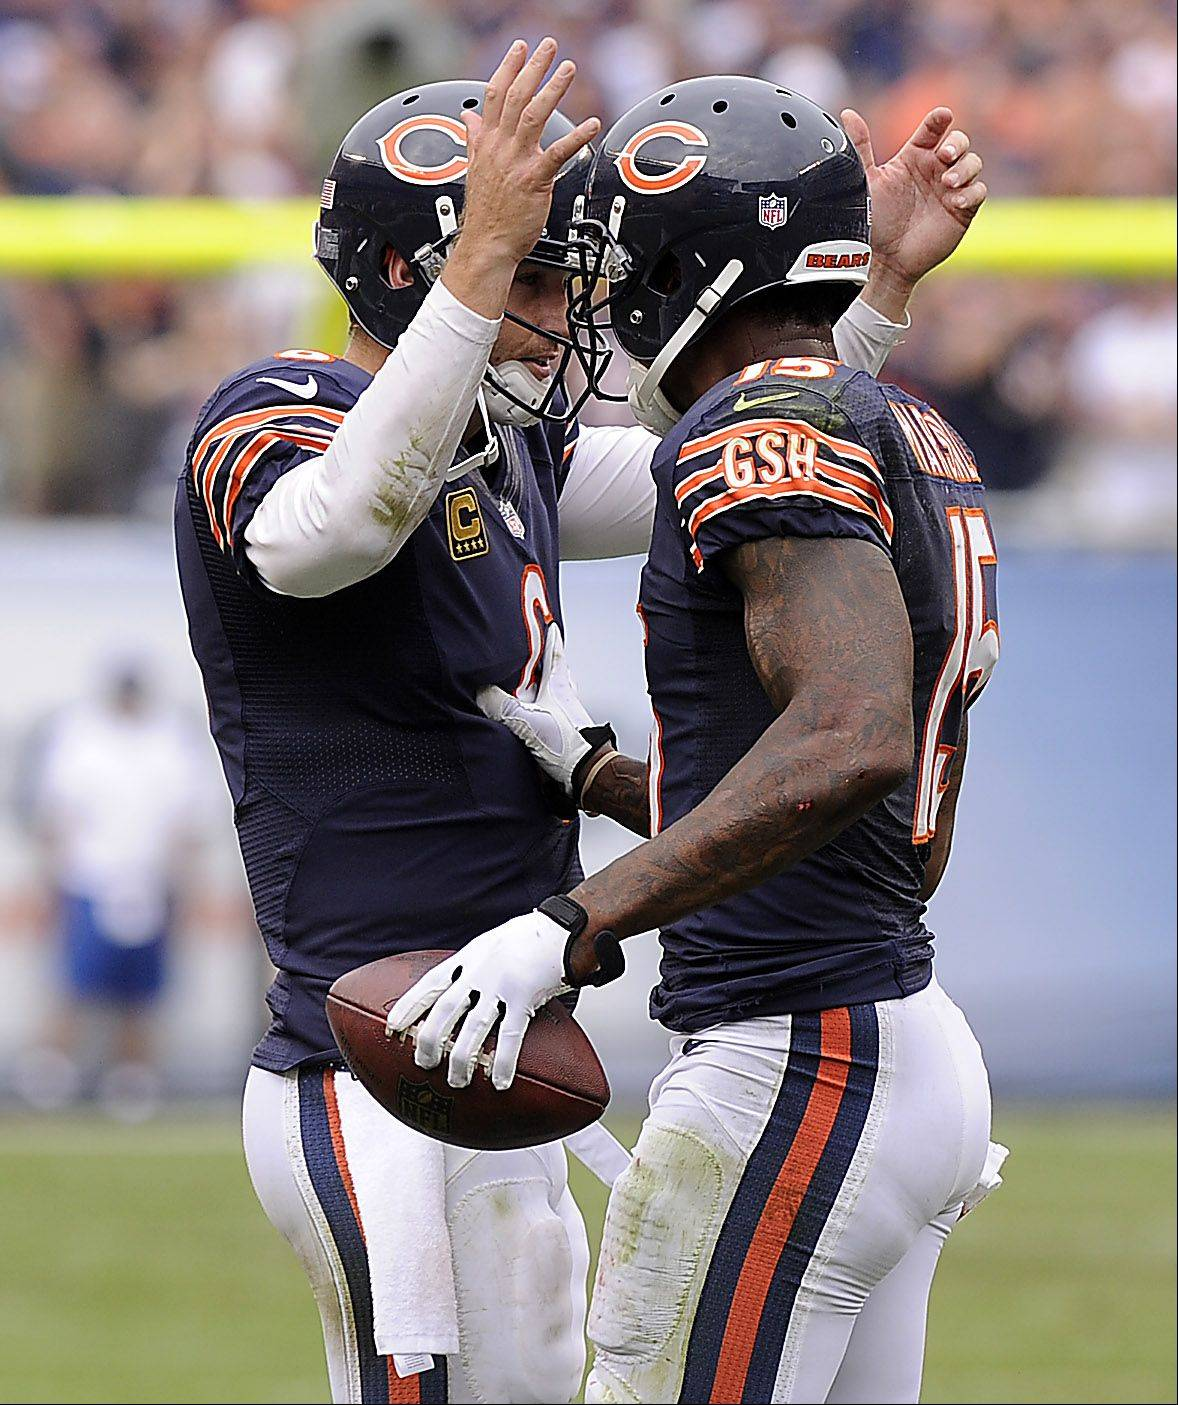 Chicago Bears quarterback Jay Cutler and Brandon Marshall celebrate Marshall's fourth quarter touchdown in the season opener against the Cincinnati Bengals at Soldier Field in Chicago.